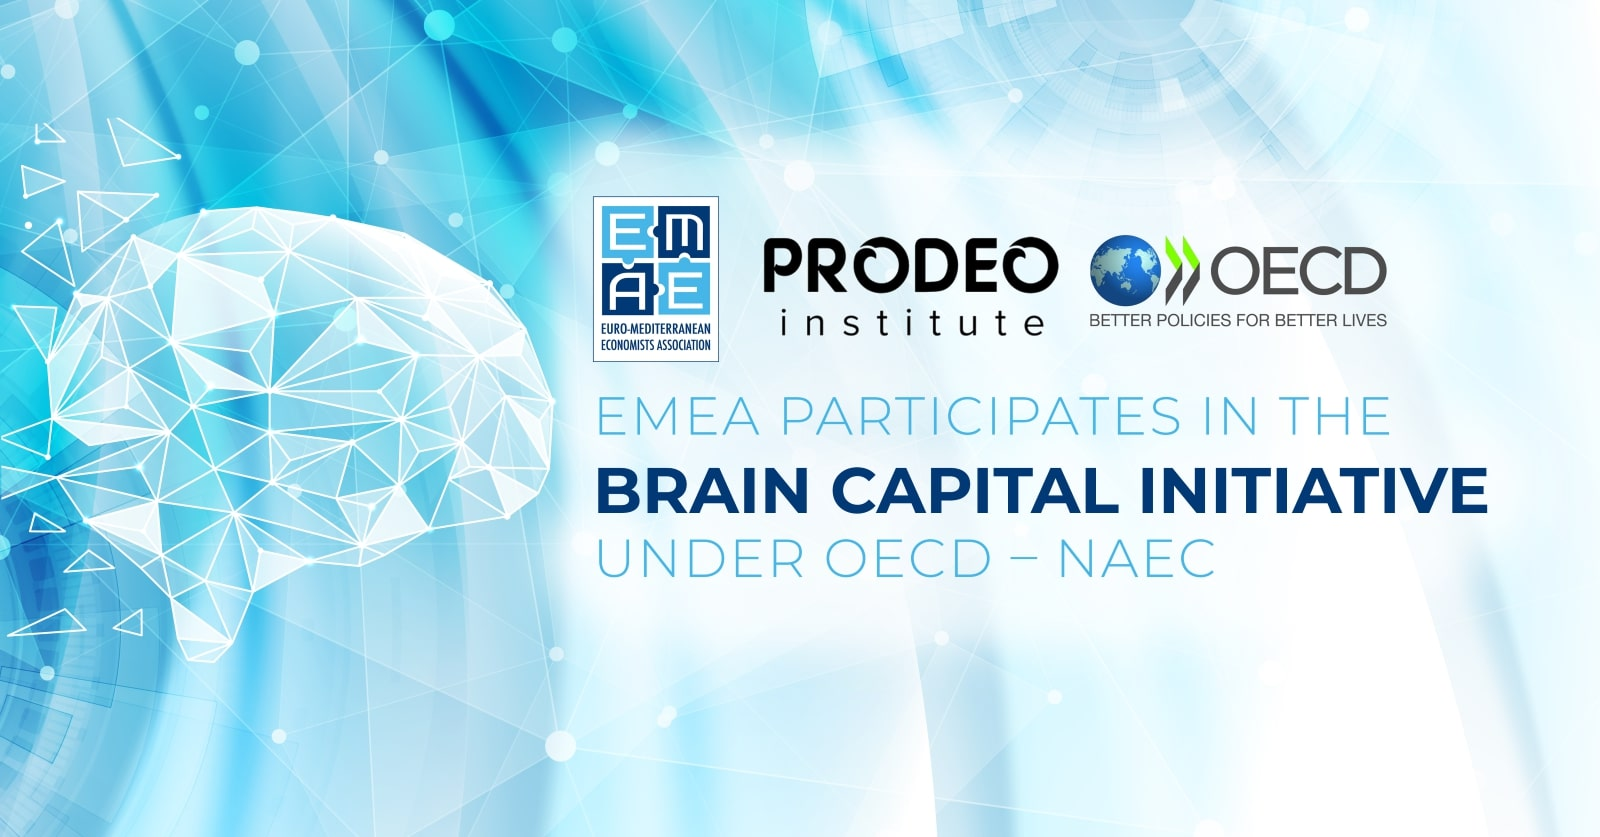 EMEA participates in the Brain Capital Initiative under OECD – NAEC